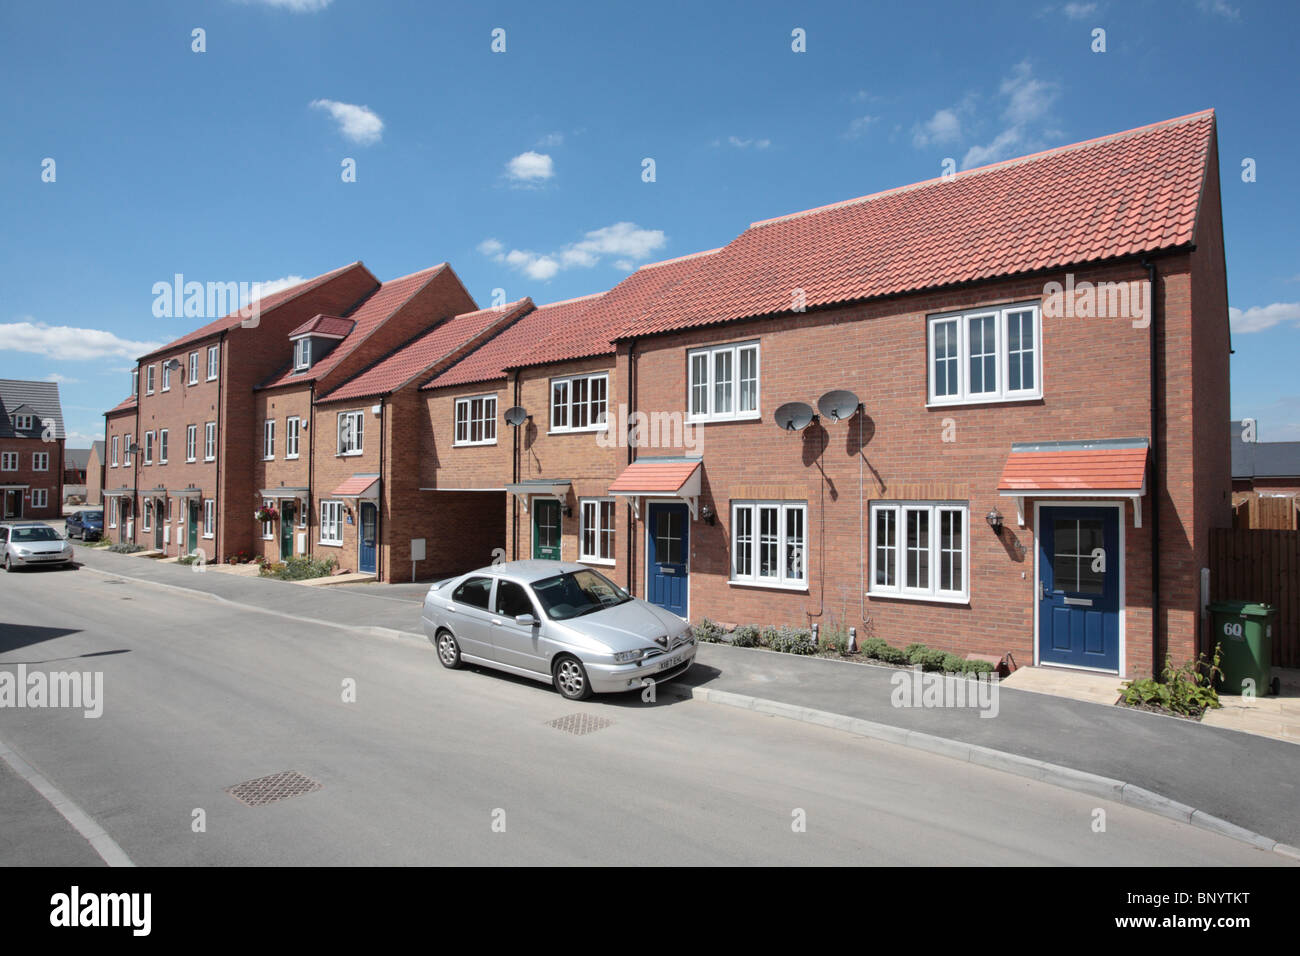 New affordable town housing in Grimsby - Stock Image